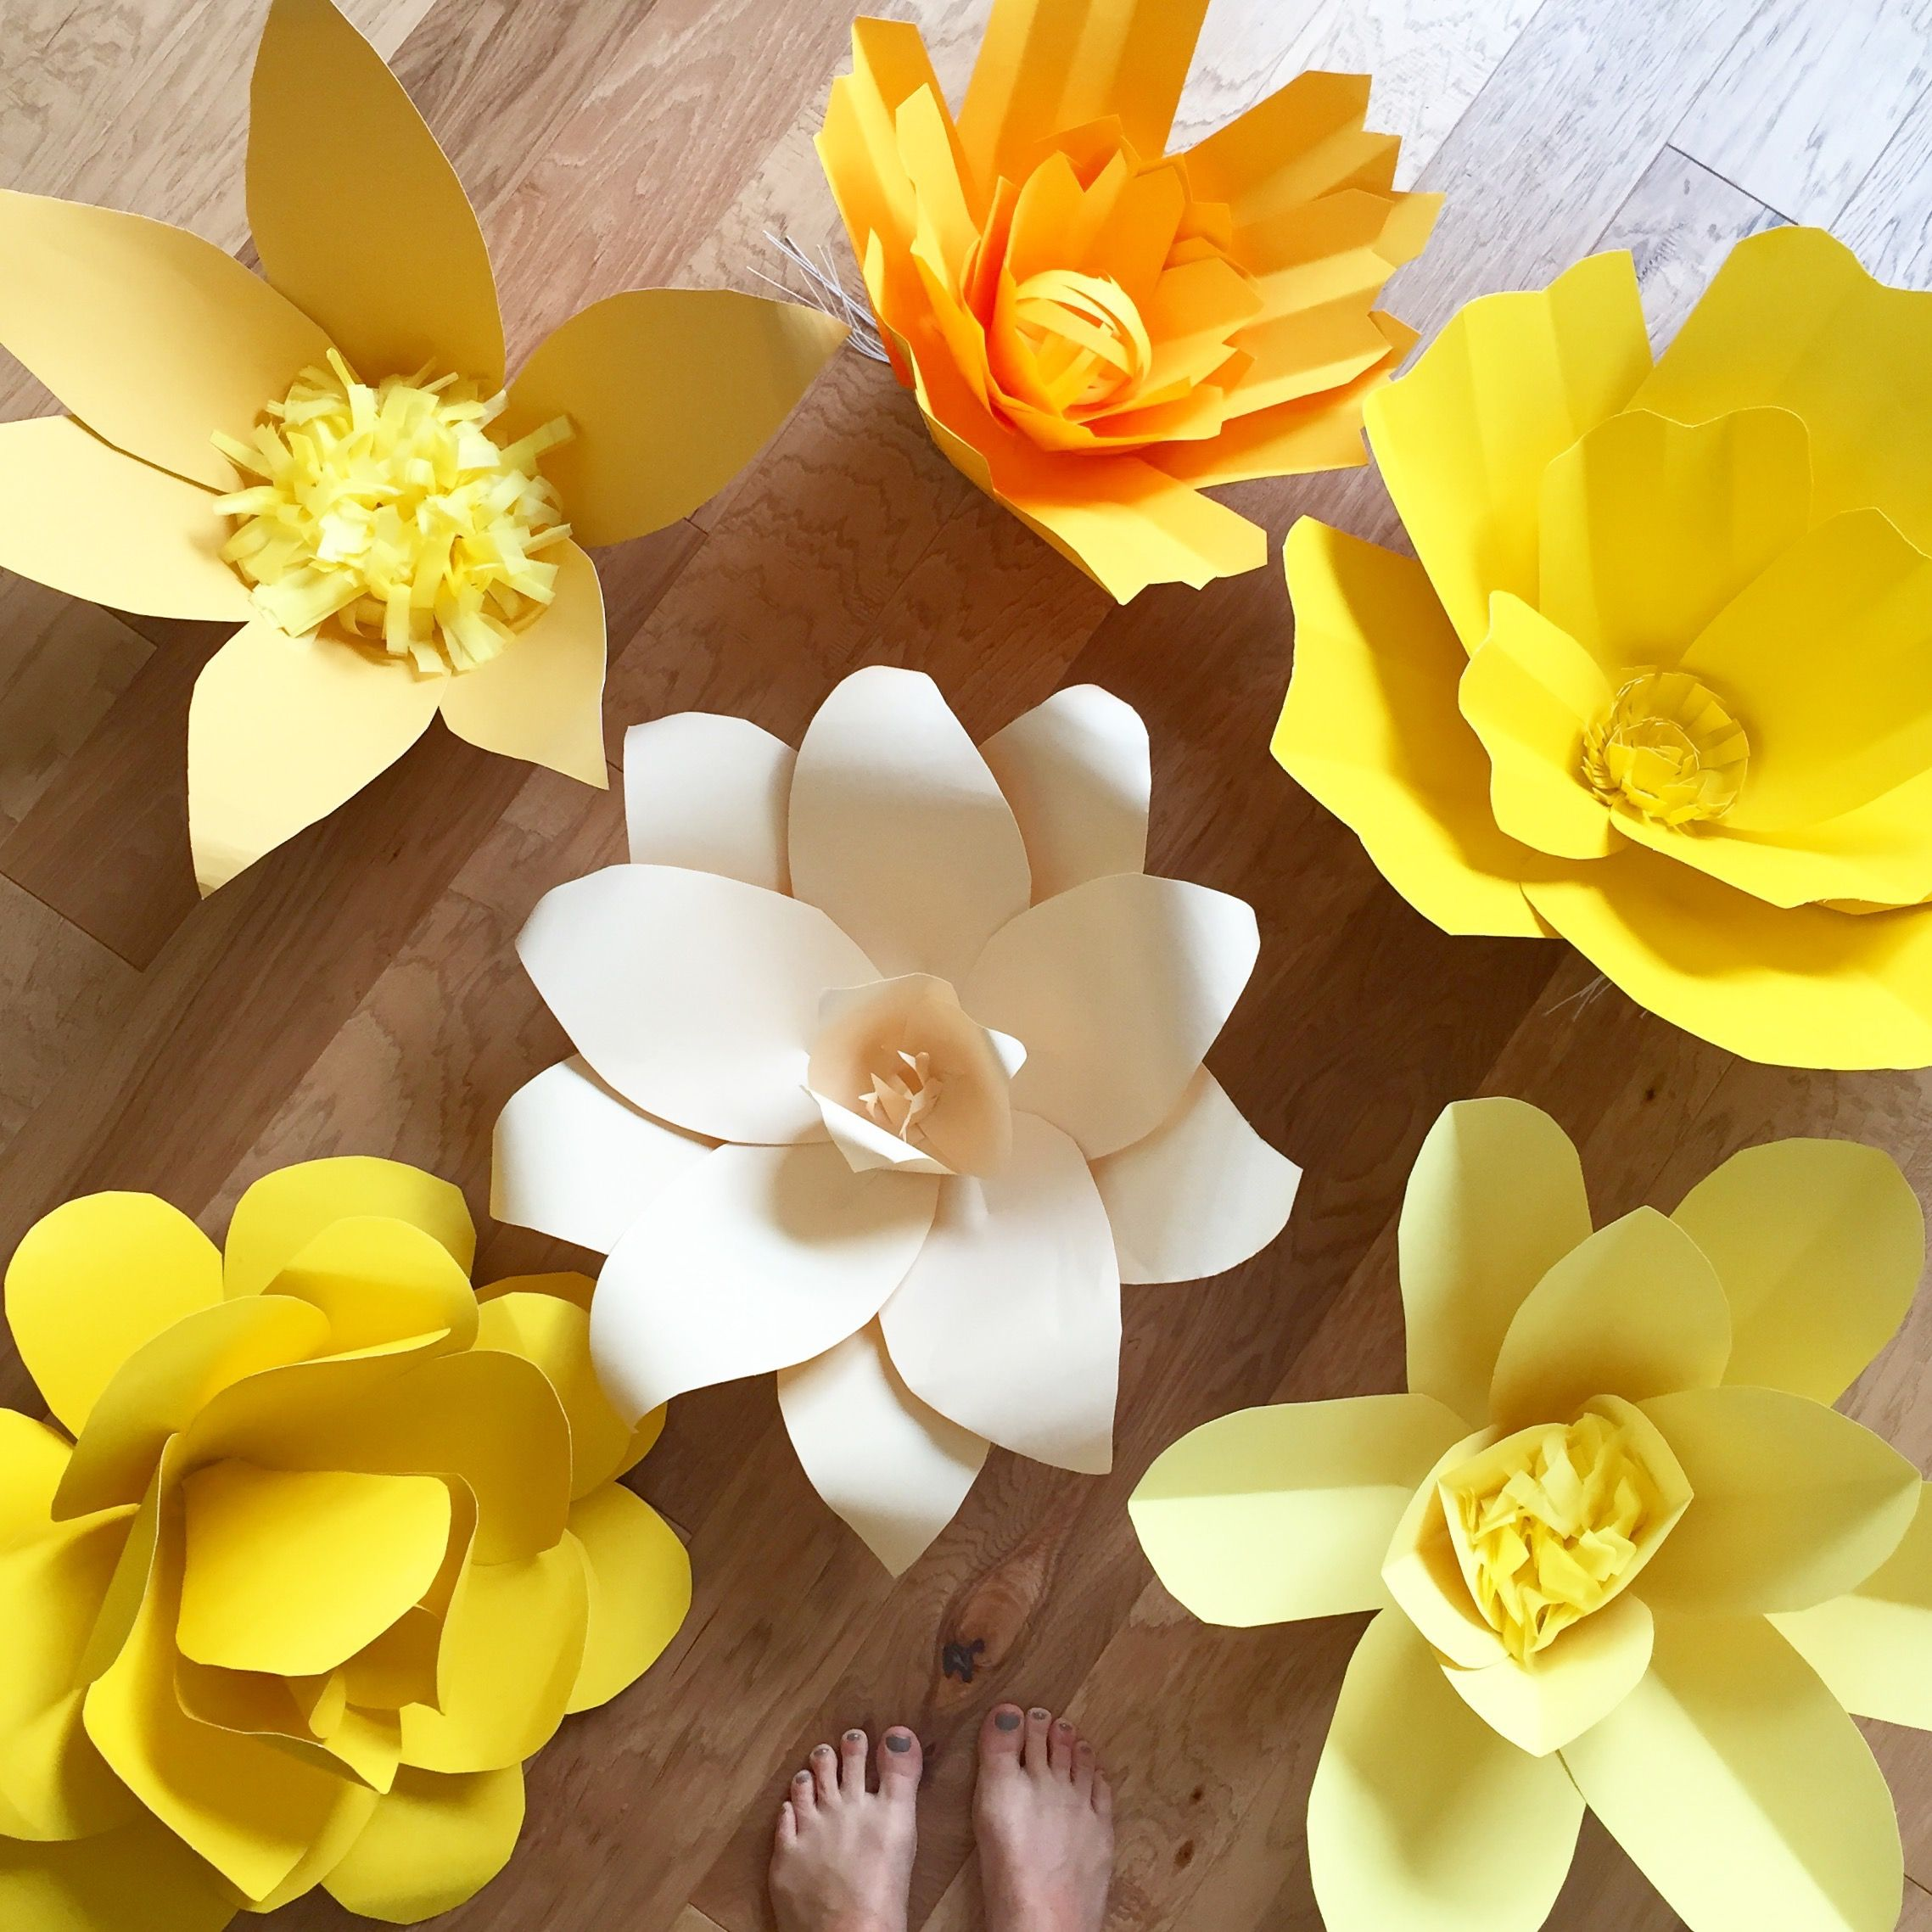 Diy Paper Flowers Wedding Arch: DIY Giant Paper Flower Arch